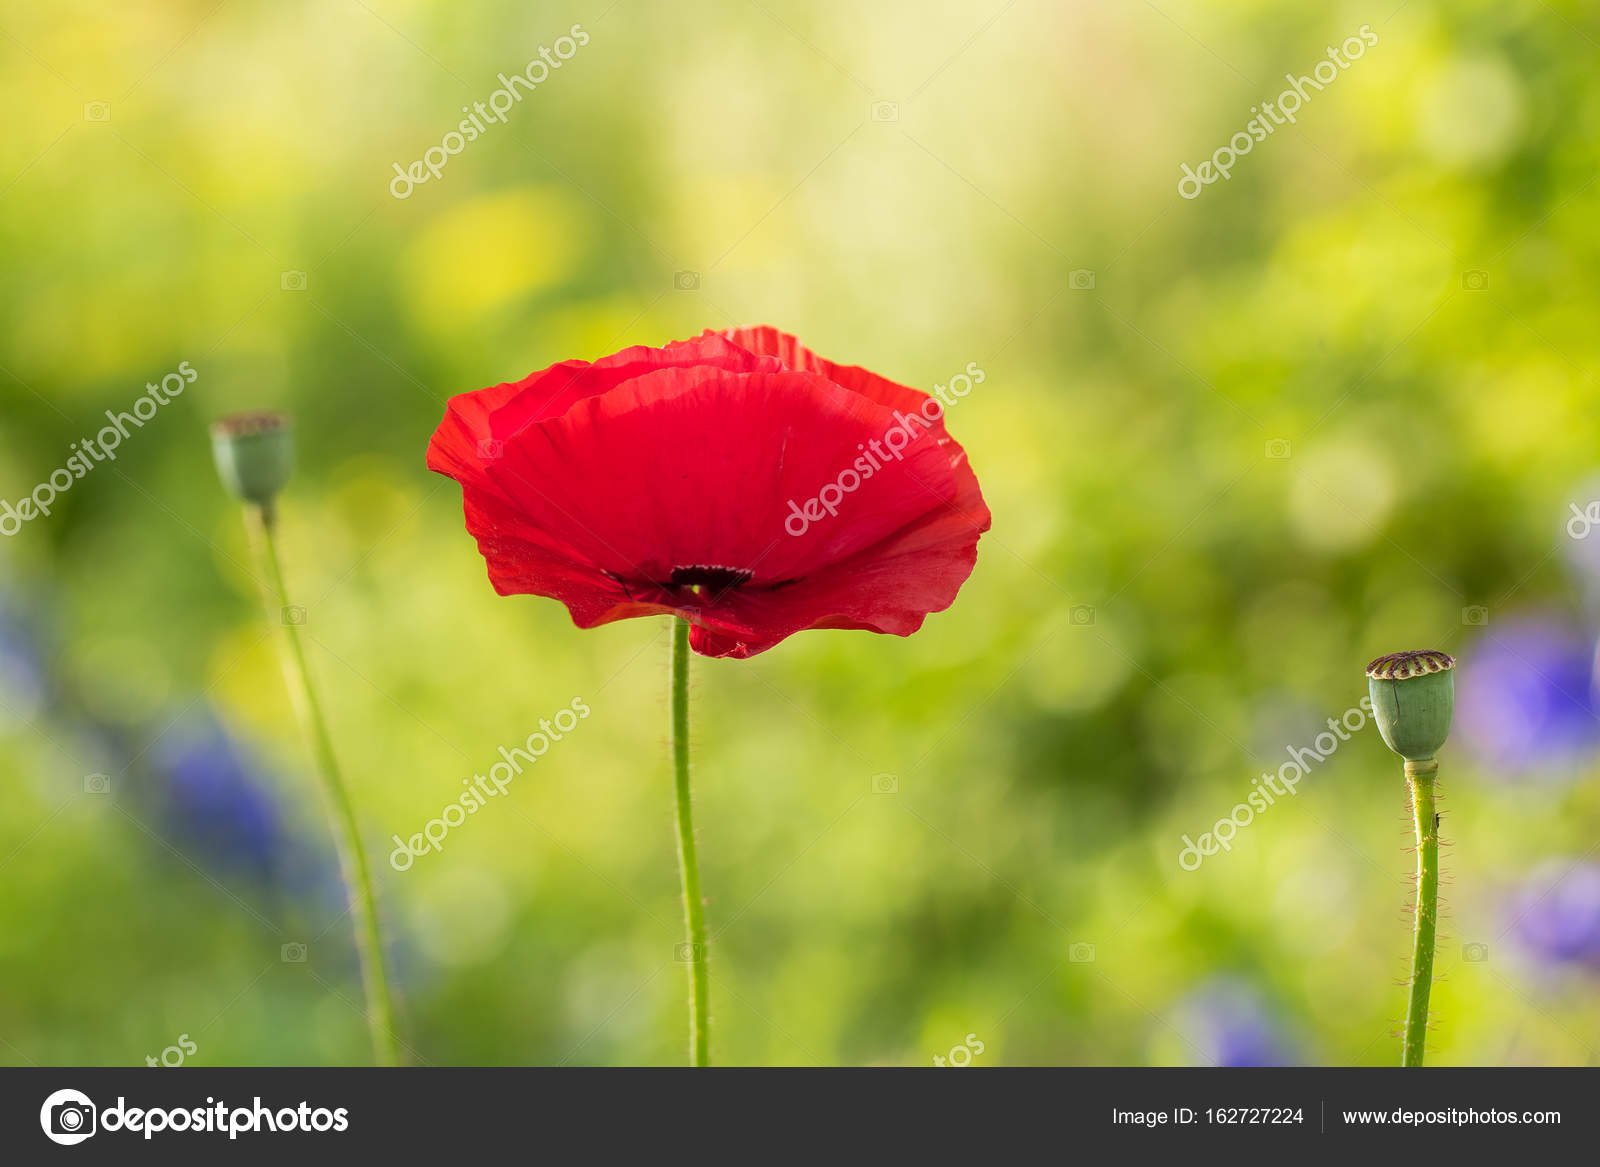 A Beautiful Red Poppies Blooming In The Garden Pink Poppy In The